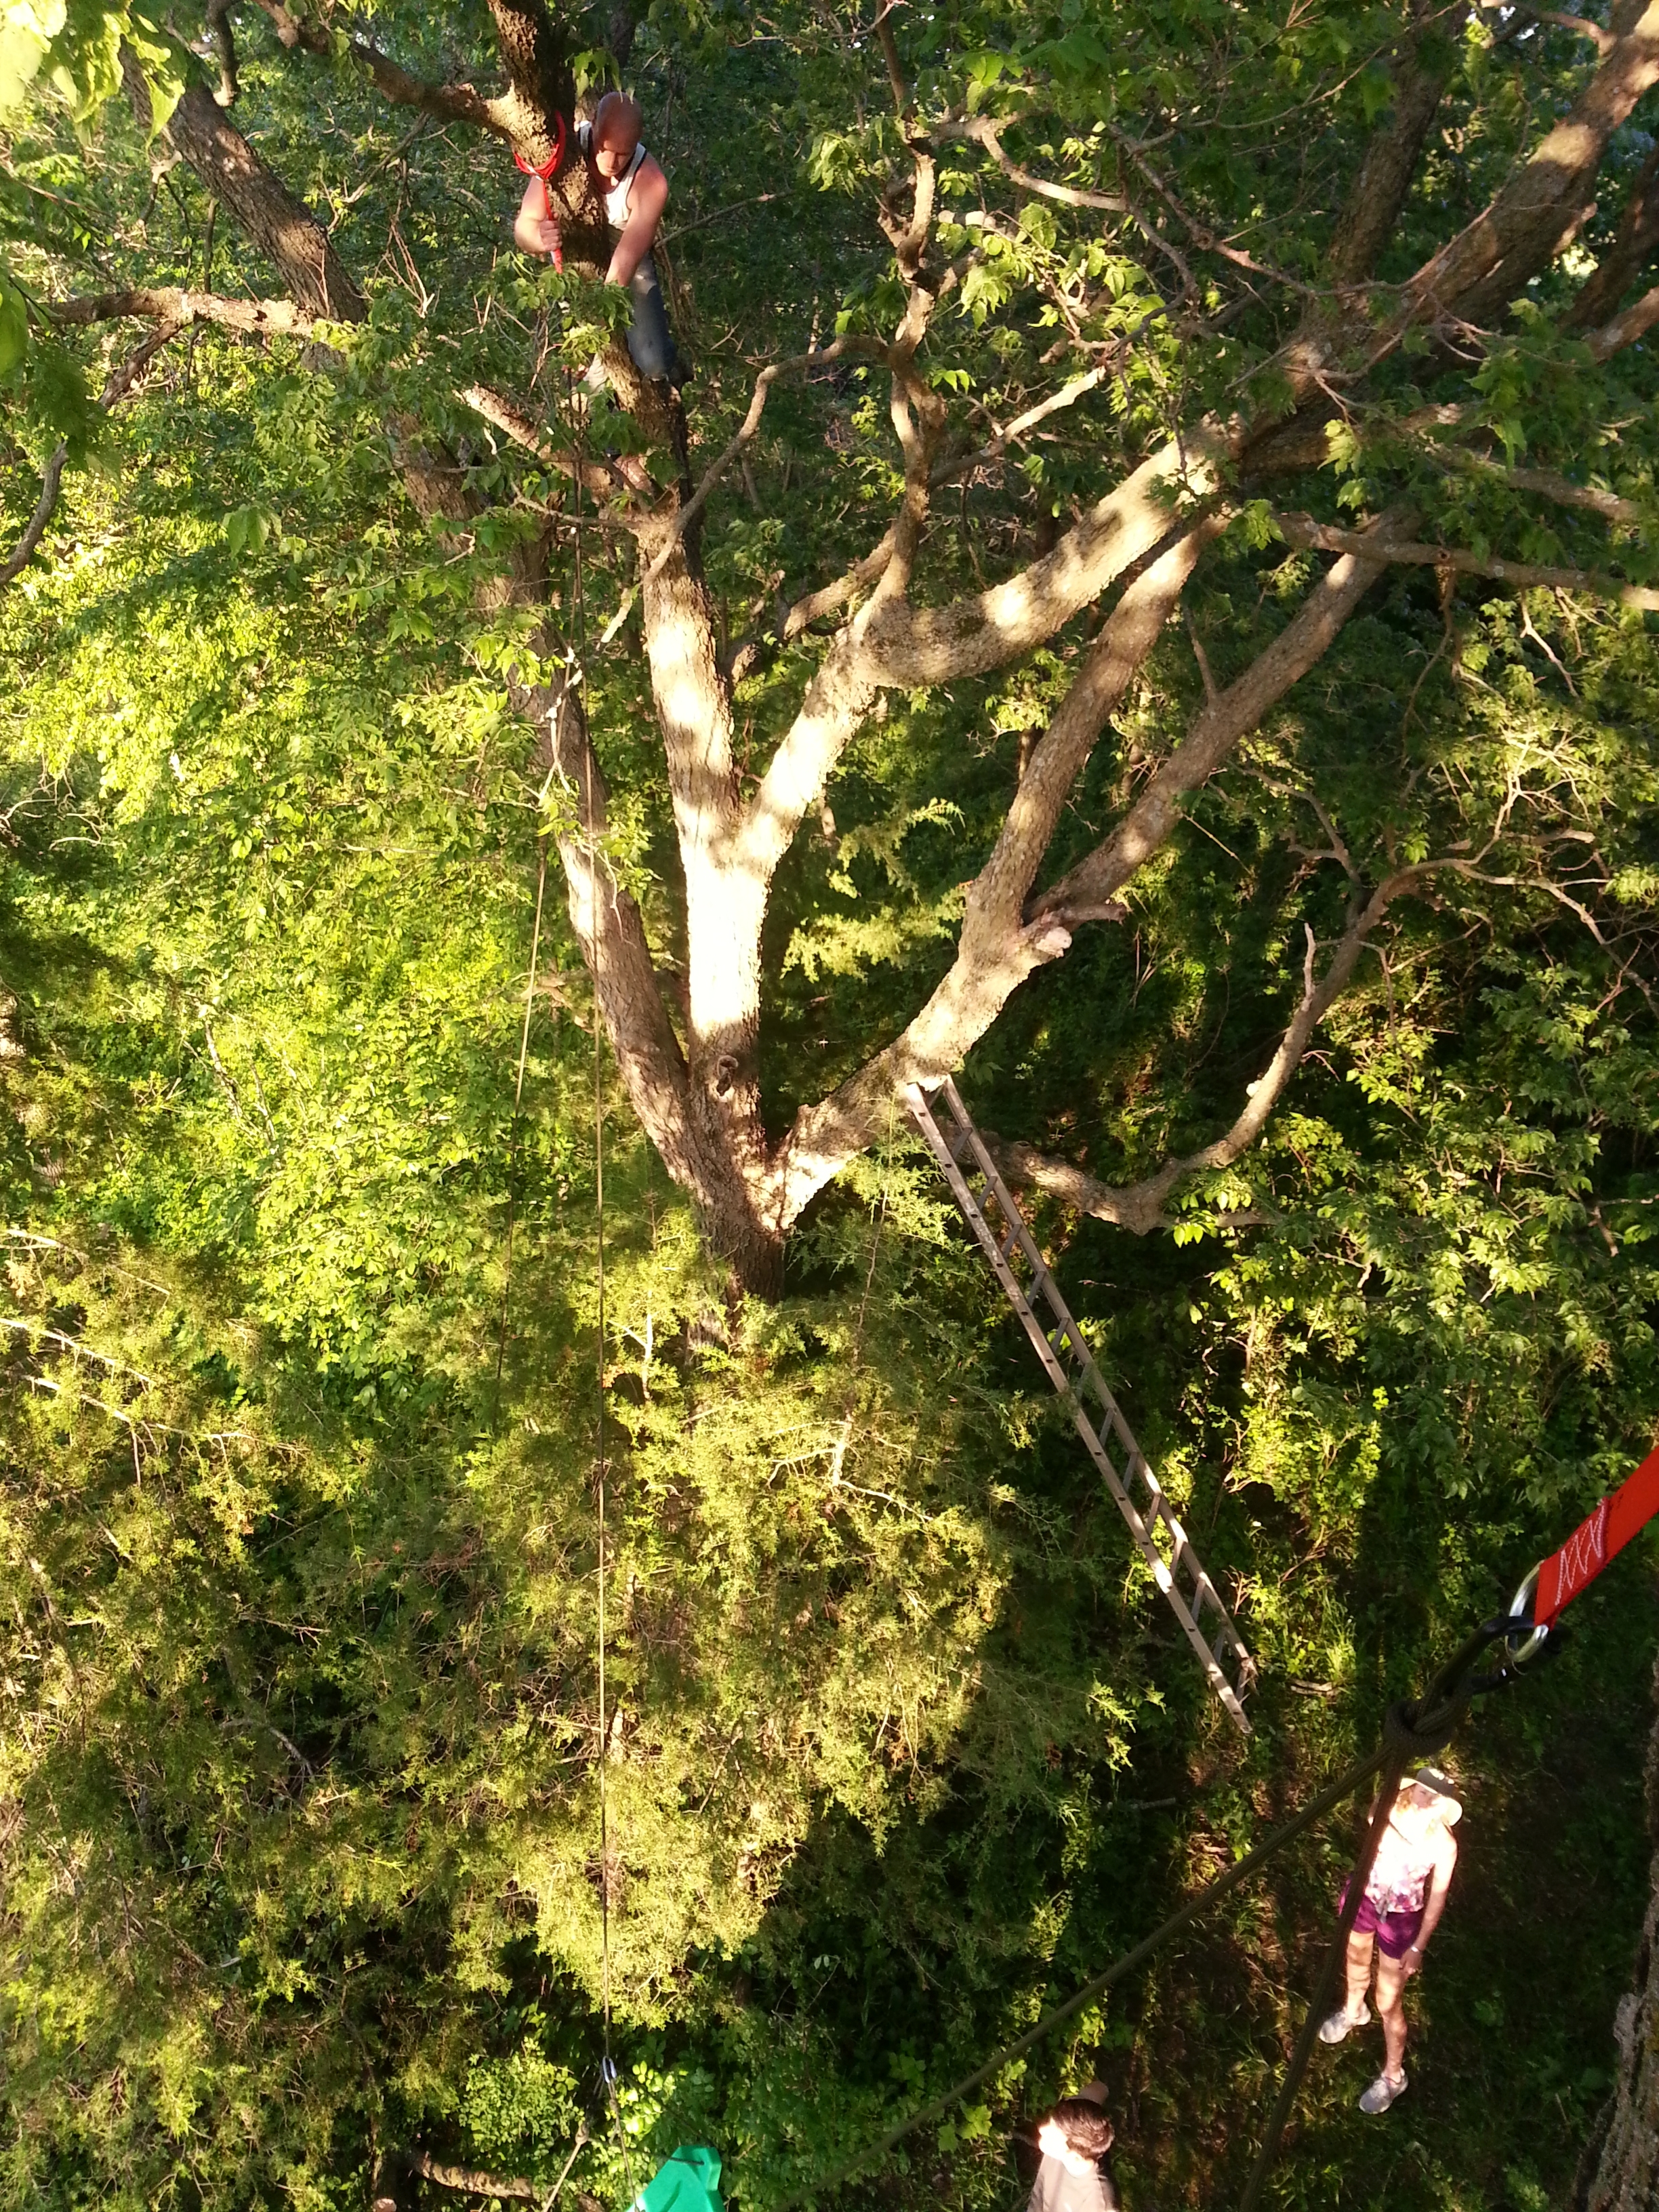 Hanging a swing means getting real high...